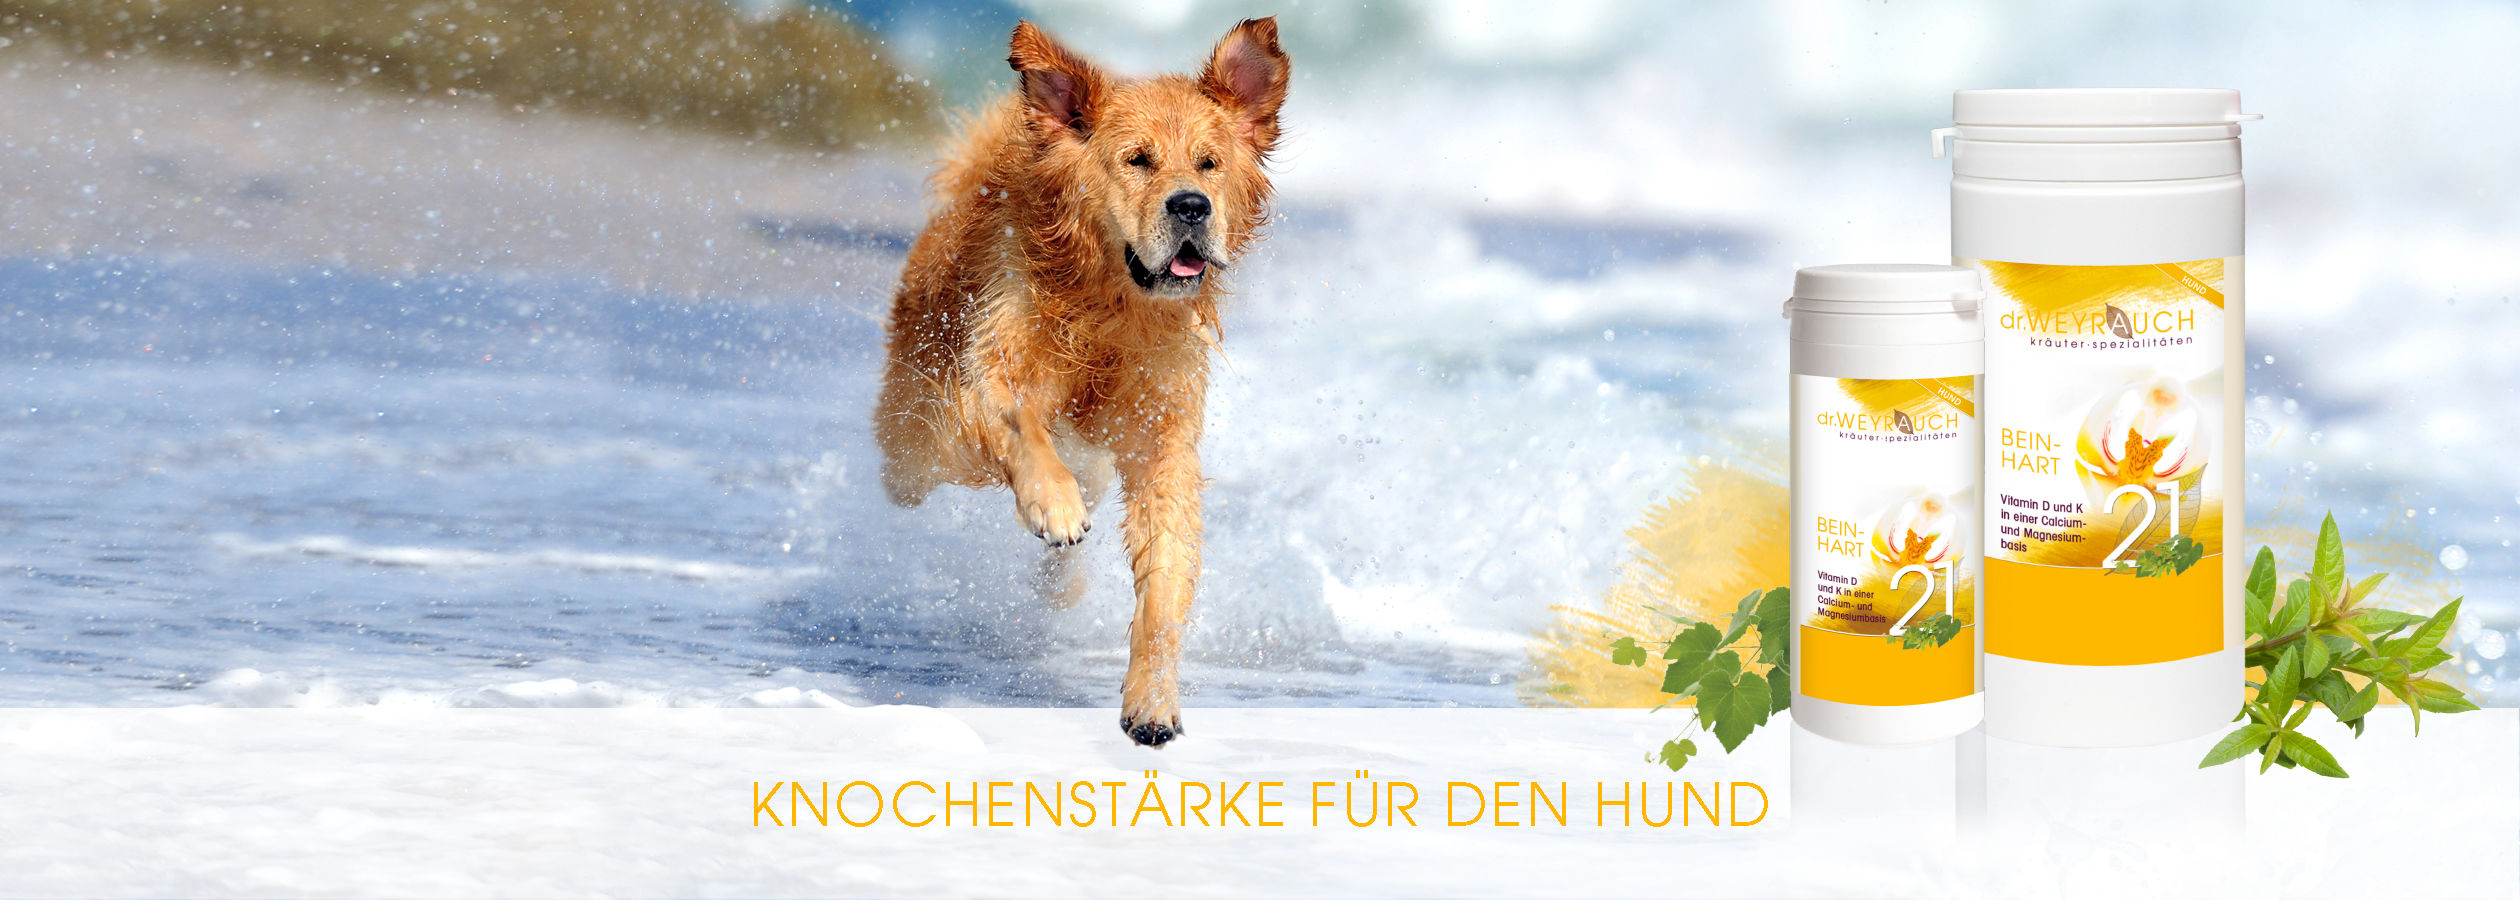 HEADER-2017-Beinhart-Hund